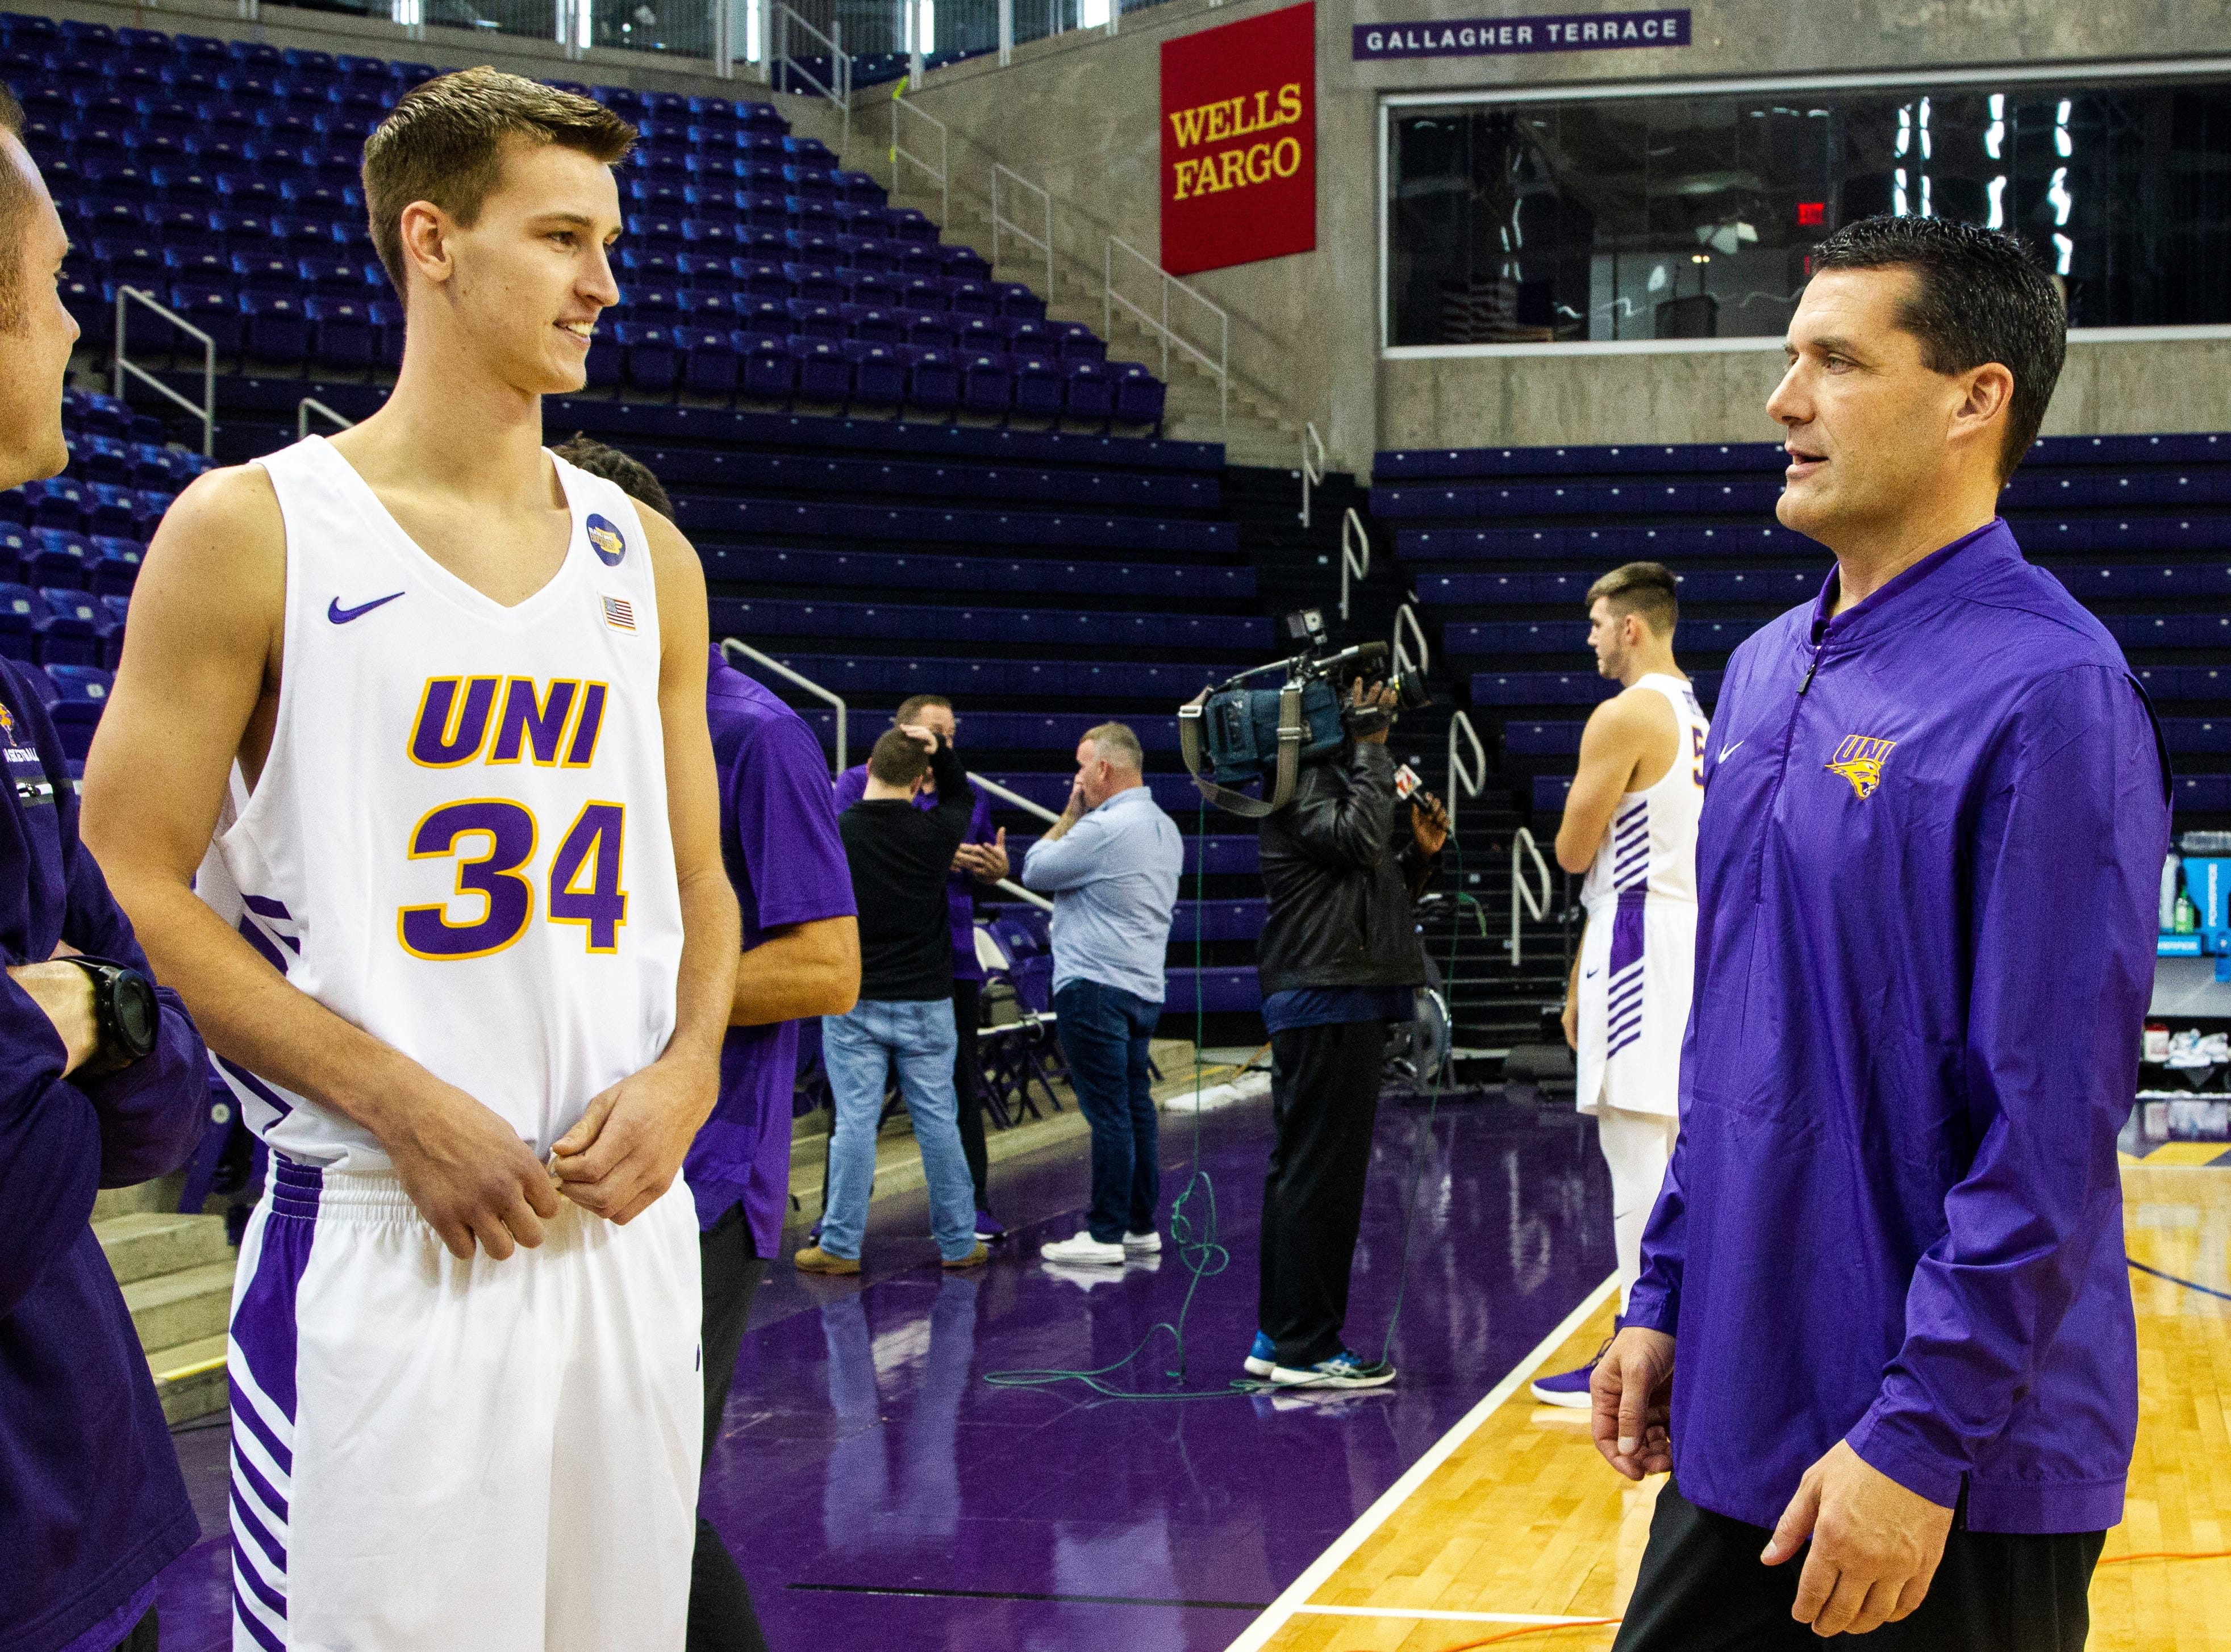 Northern Iowa forward Luke McDonnell (34) talks with head coach Ben Jacobson during Panthers men's basketball media day on Wednesday, Oct. 17, 2018, at the McLeod Center in Cedar Falls.